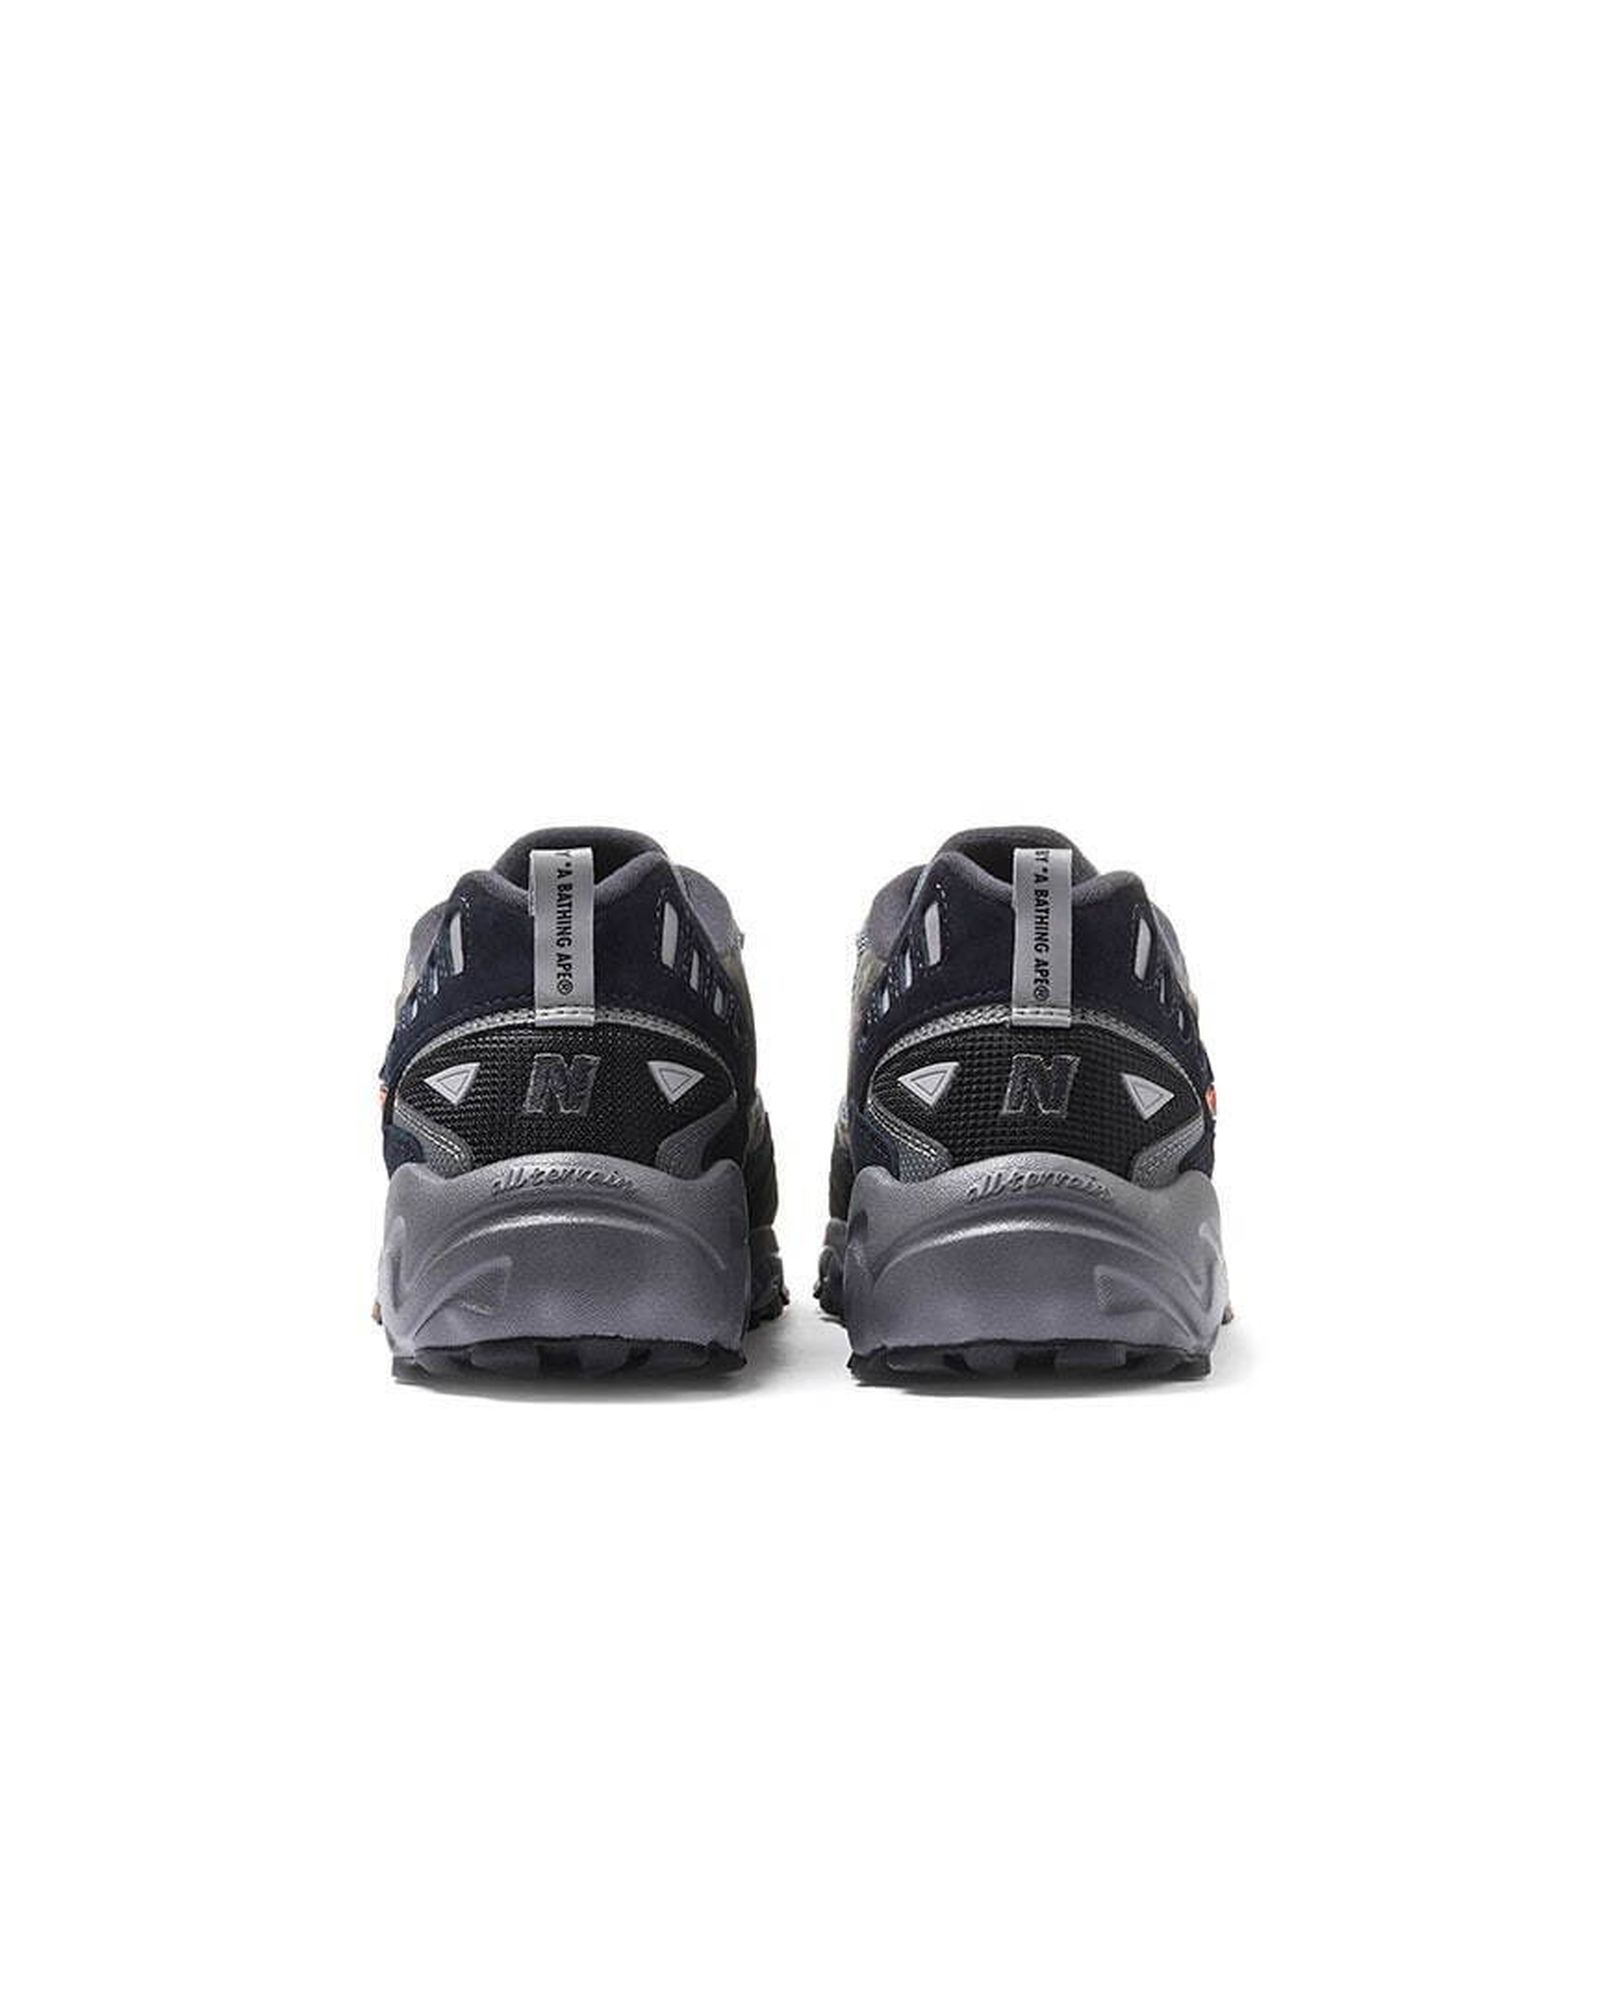 aape-new-balance-collection-release-info-6